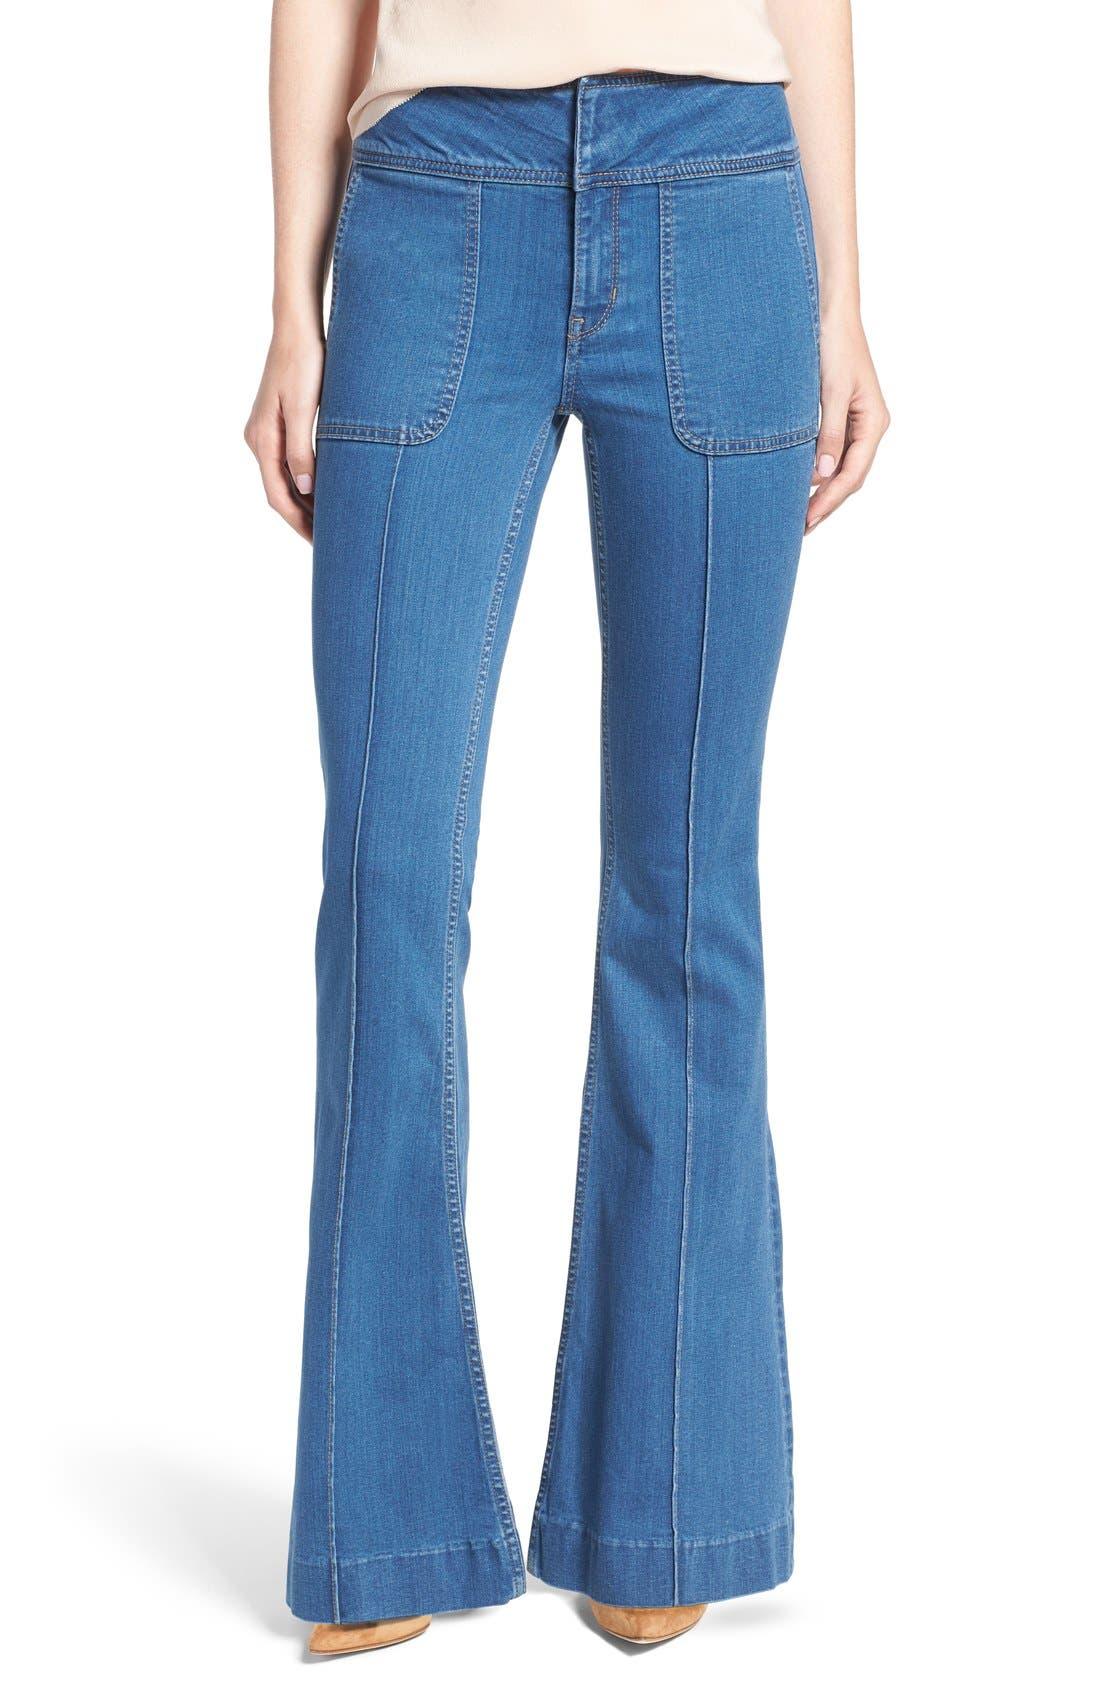 Alternate Image 1 Selected - Olivia Palermo + Chelsea28 High Rise Flare Jeans (Mode Lt Rinse)